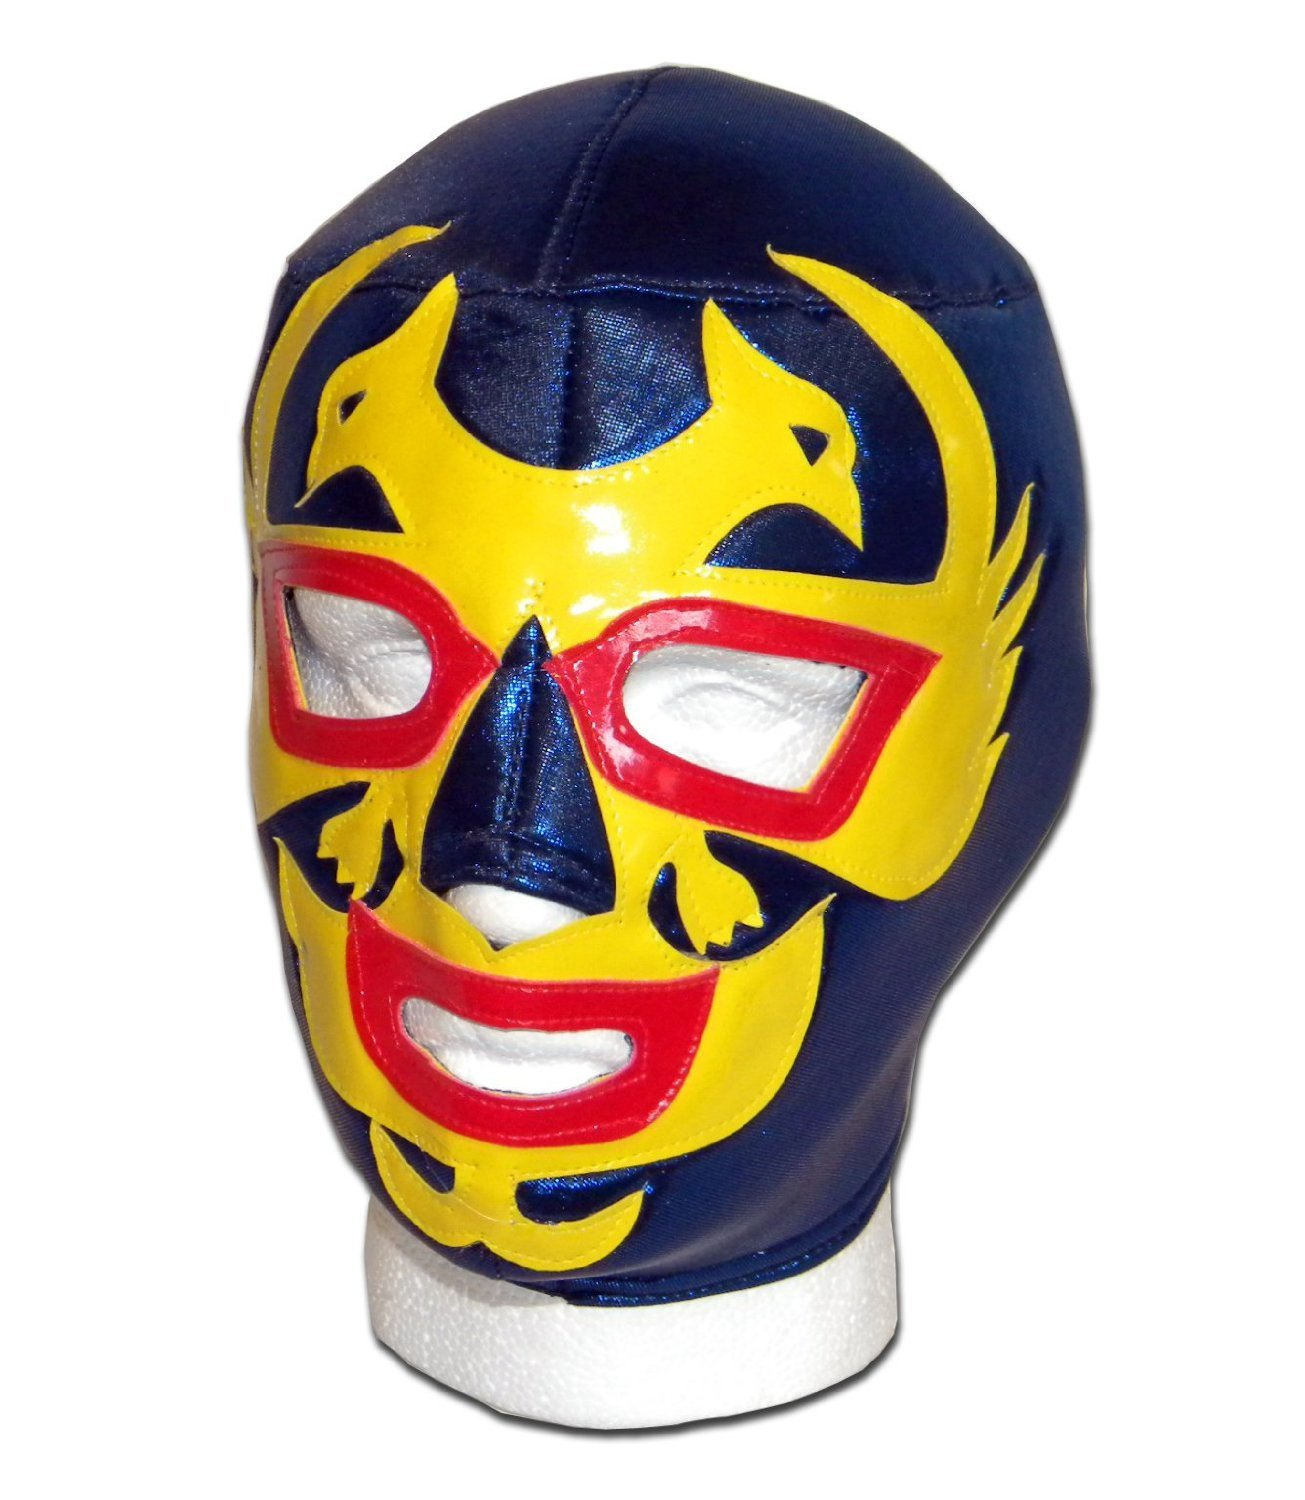 WRESTLING MASKS UK Men's Dos Caras Lucha Libre Luchador Wrestling Mask One Size Blue/Yellow by Wrestling